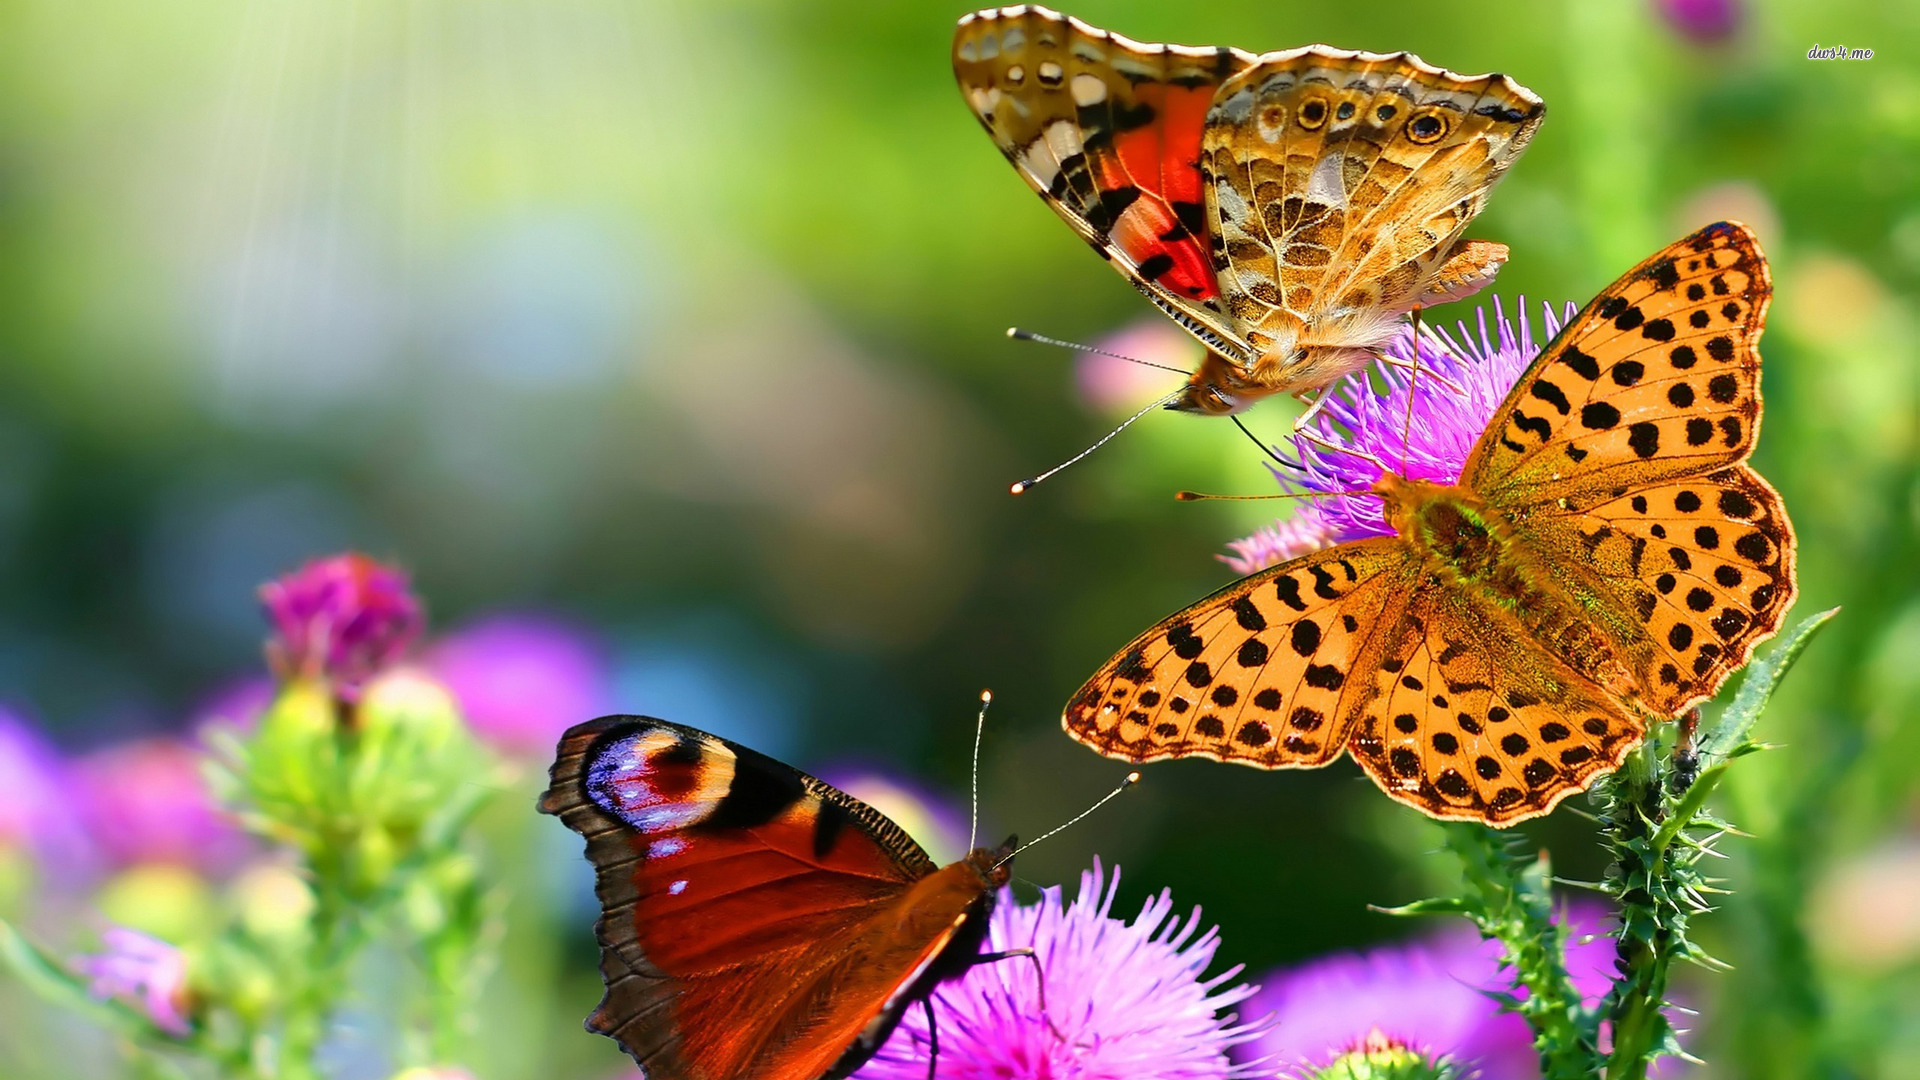 The Best Butterflies Live Wallpaper On Android - Butterfly Hd Wallpapers Free Download , HD Wallpaper & Backgrounds